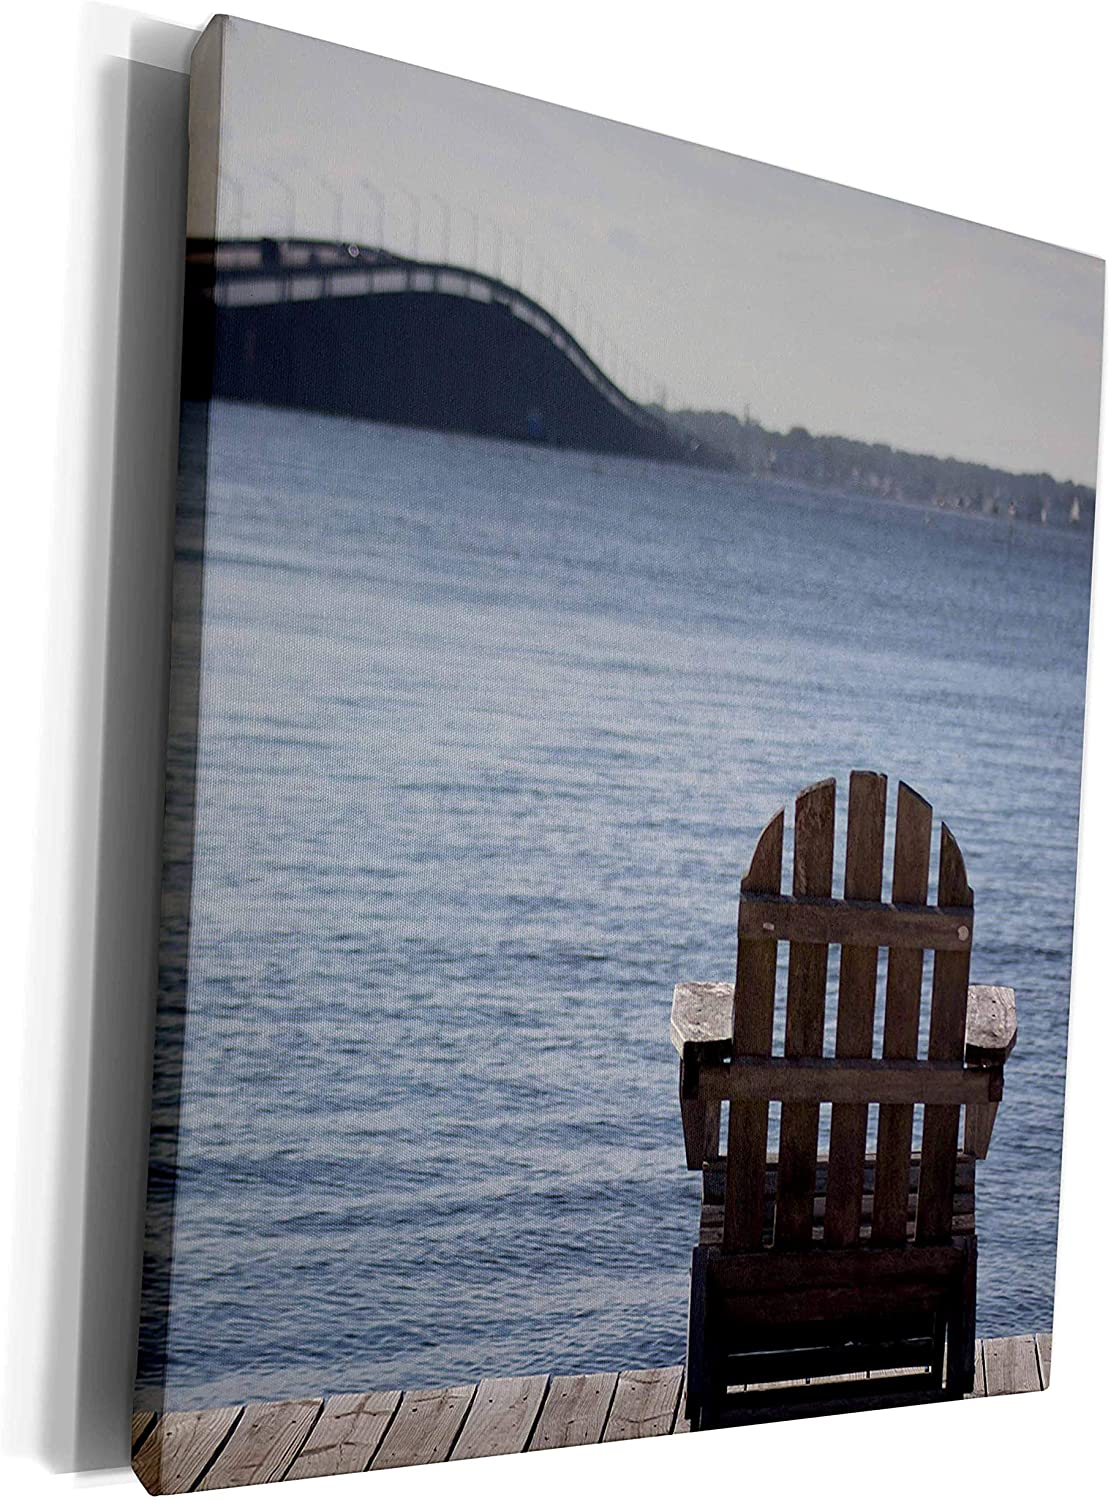 3dRose Stamp City - landscape - Relax on an adirondack chair on the dock overlooking the Barnegat Bay. - Museum Grade Canvas Wrap (cw_295244_1)